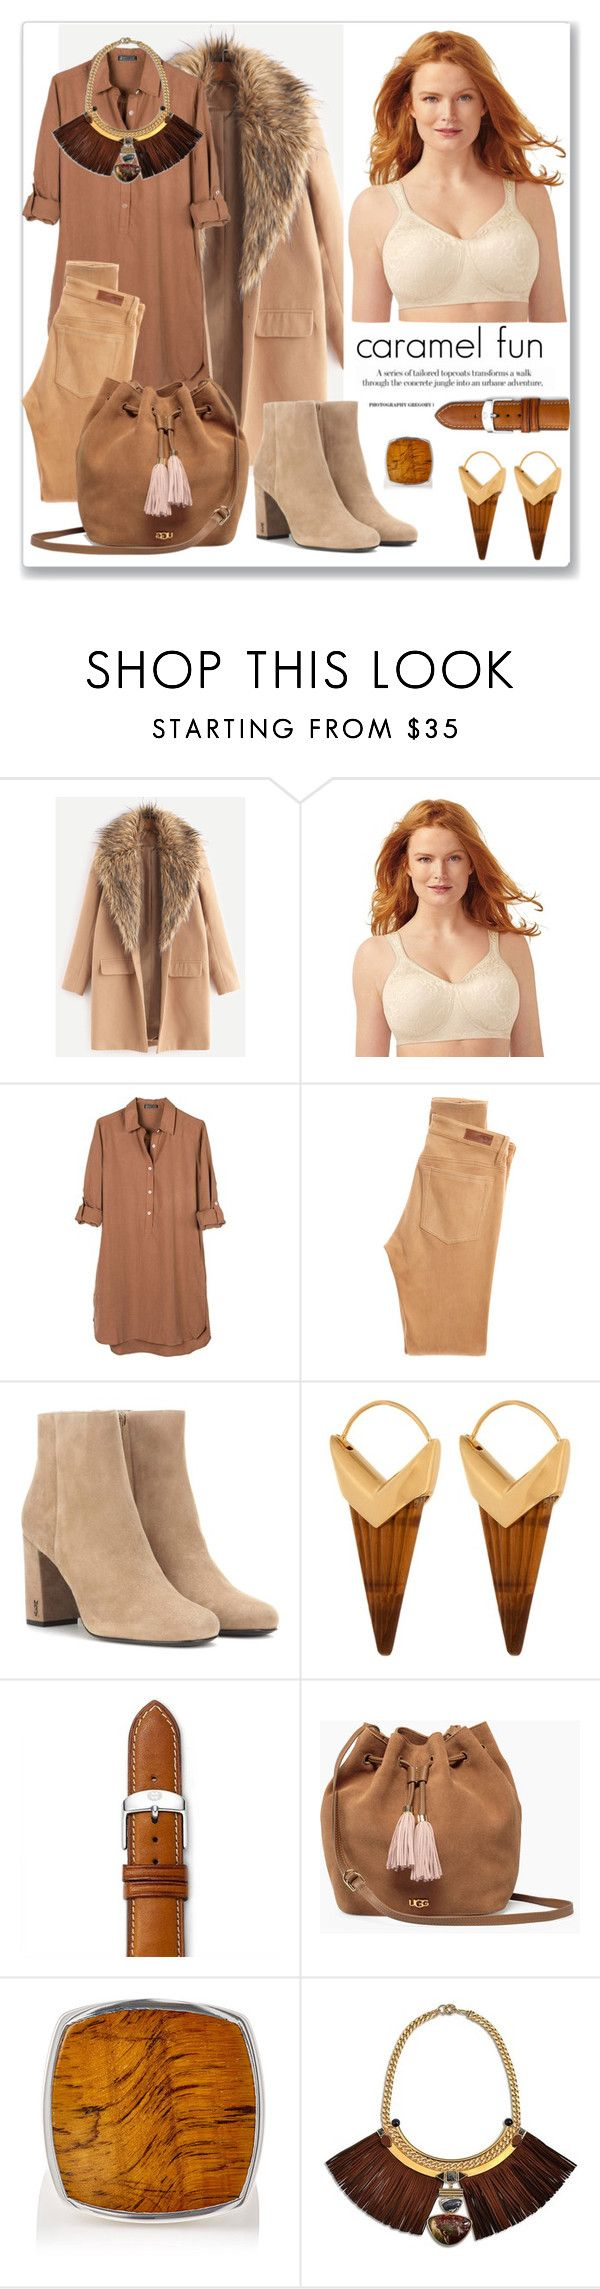 """""""necklace"""" by mariarty ❤ liked on Polyvore featuring Playtex, United by Blue, AG Adriano Goldschmied, Yves Saint Laurent, Theodora Warre, Michele, UGG, Tom Wood and Natalie Waldman"""